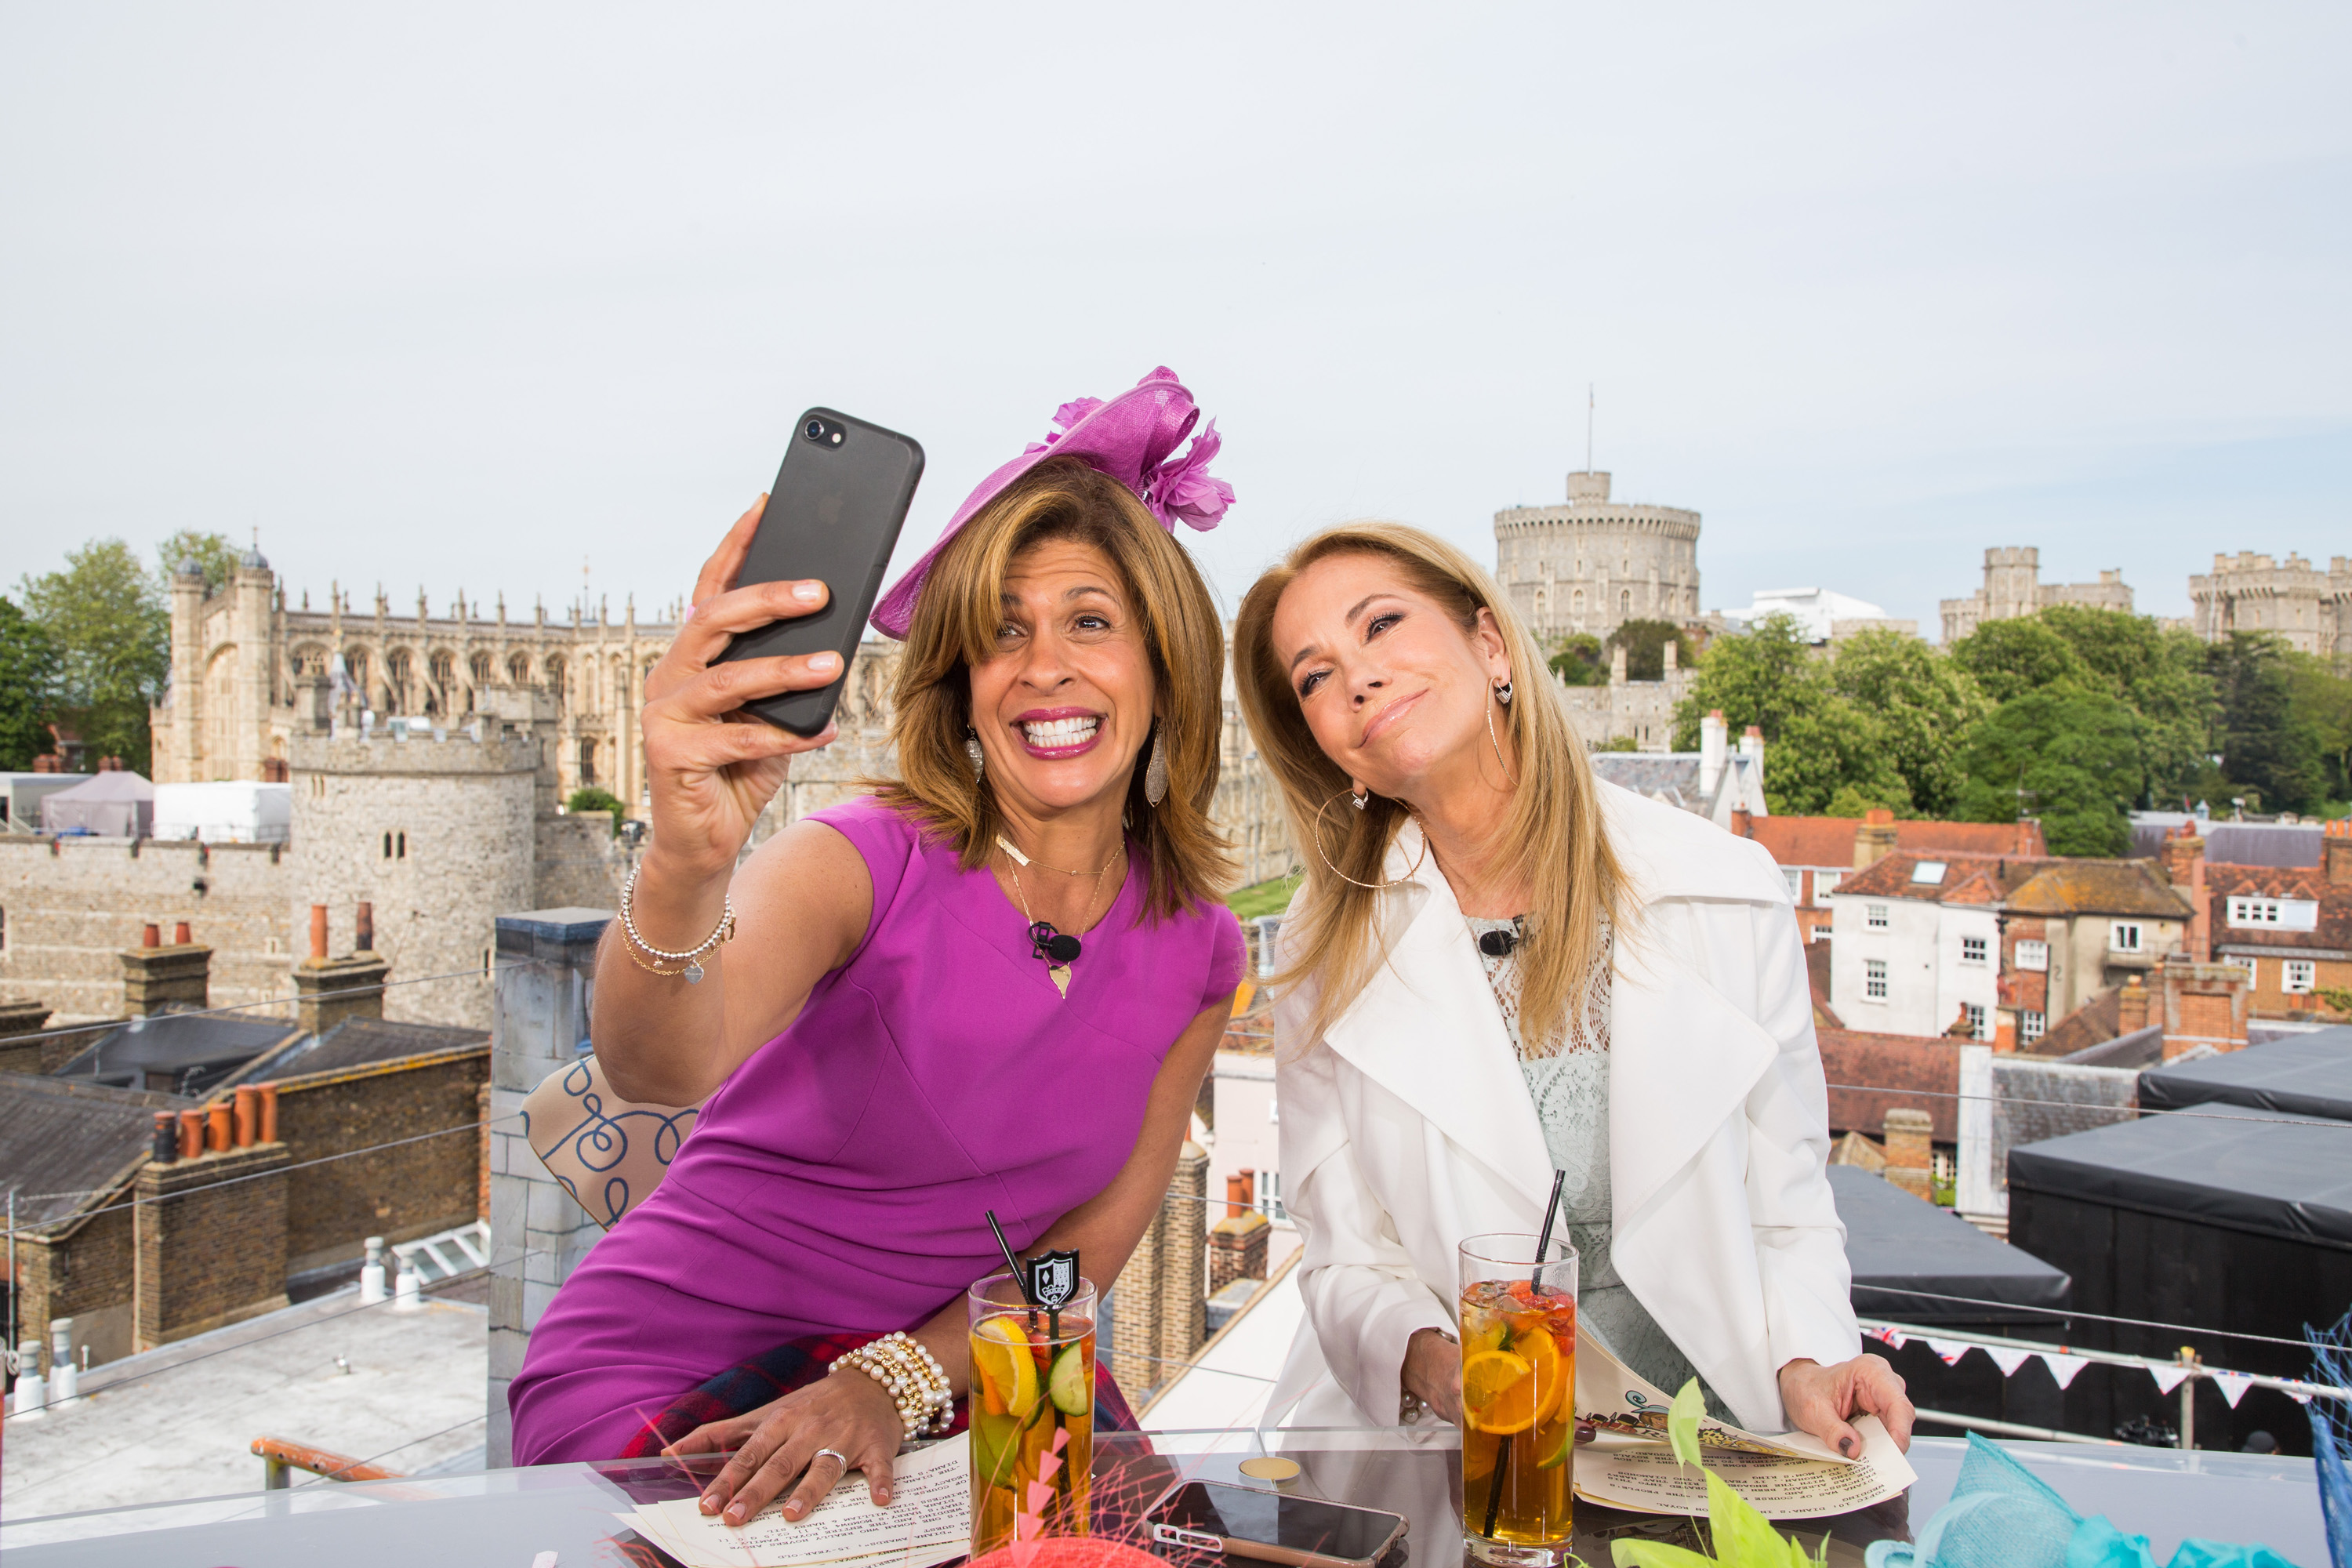 TODAY -- Pictured: (l-r) Hoda Kotb and Kathie Lee Gifford for the wedding of Prince Harry and Meghan Markle at Windsor Castle on Friday May 18, 2018 in Windsor, England. -- (Photo by: Nathan Congleton/NBC/NBCU Photo Bank via Getty Images) - TODAY — Pictured: (l-r) Hoda Kotb and Kathie Lee Gifford for the wedding of Prince Harry and Meghan Markle at Windsor Castle on Friday May 18, 2018 in Windsor, England.